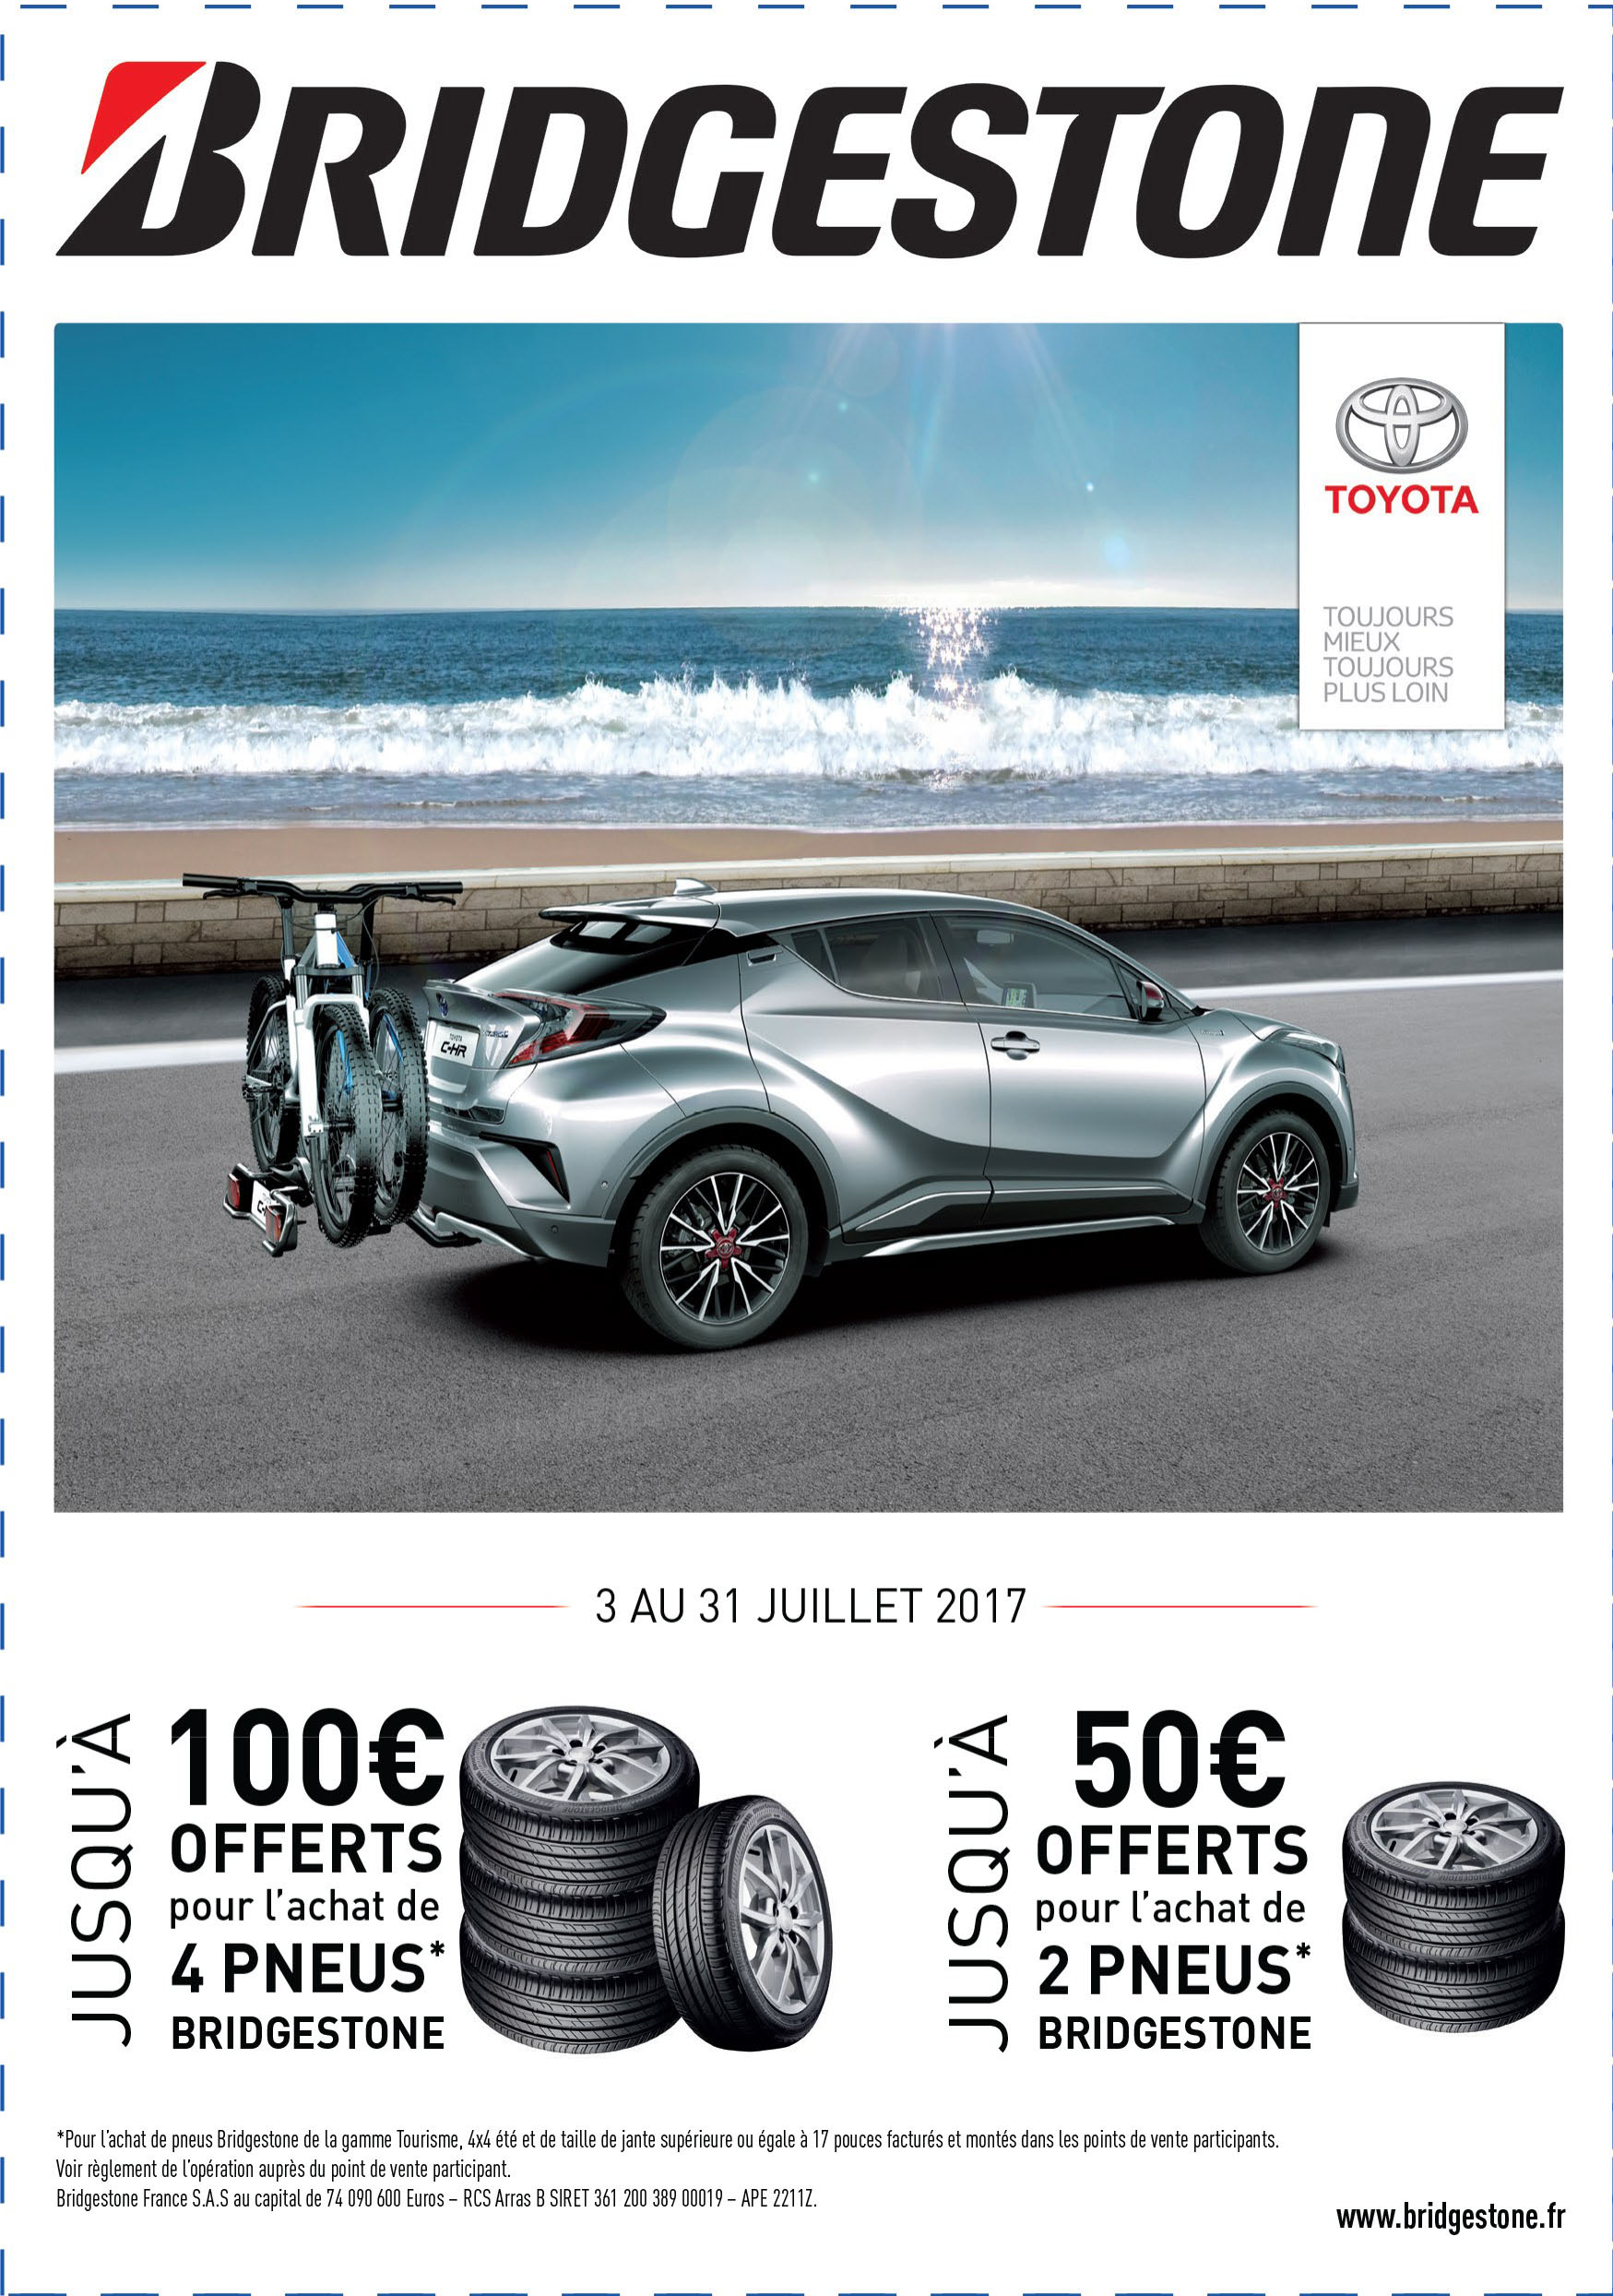 toyota albi castres jusqu 39 100 euros offerts pour l 39 achat de pneus bridgestone blog maurel. Black Bedroom Furniture Sets. Home Design Ideas